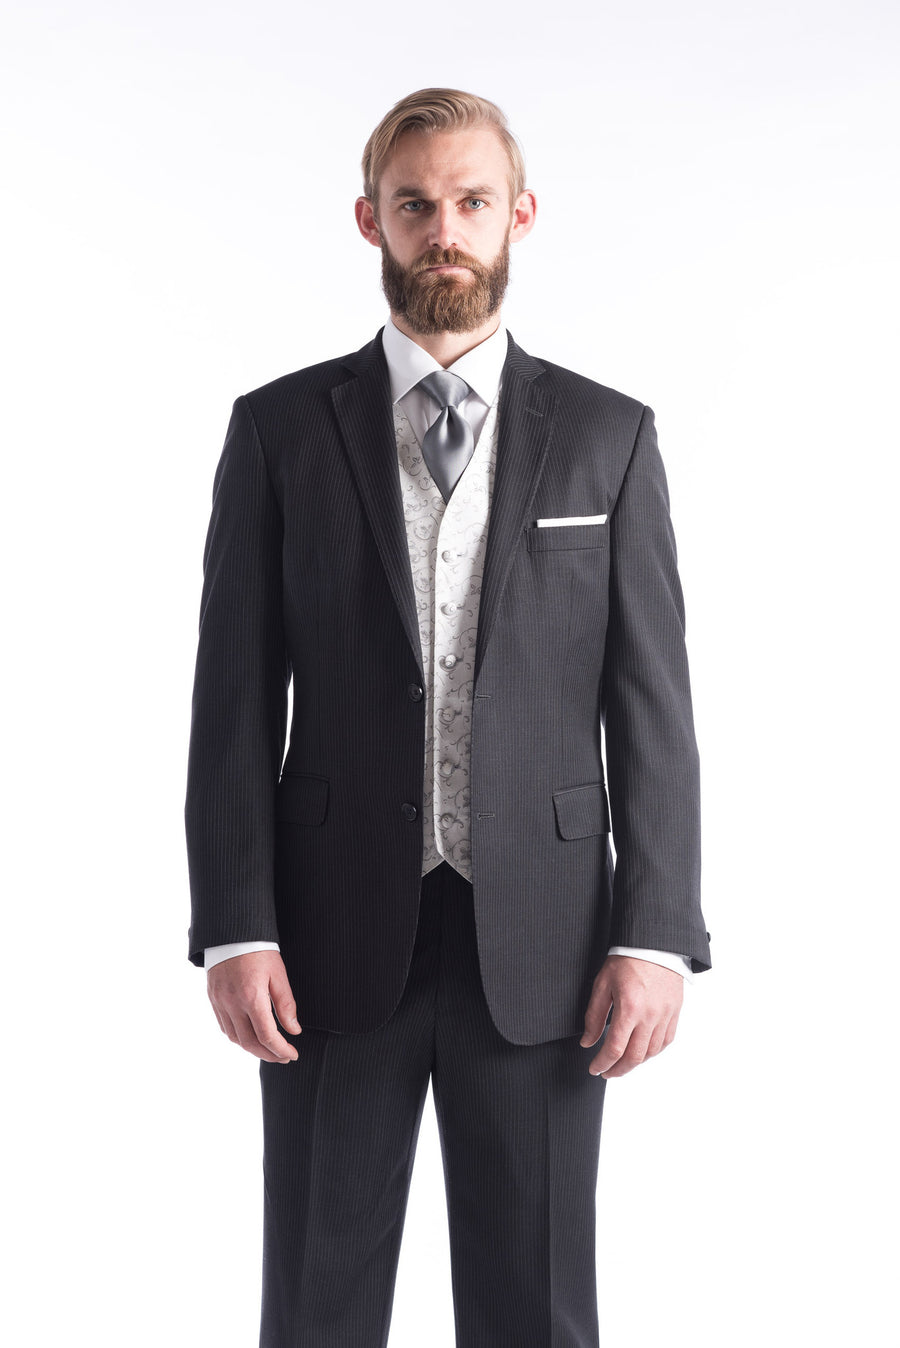 Hire Suit - Windsor